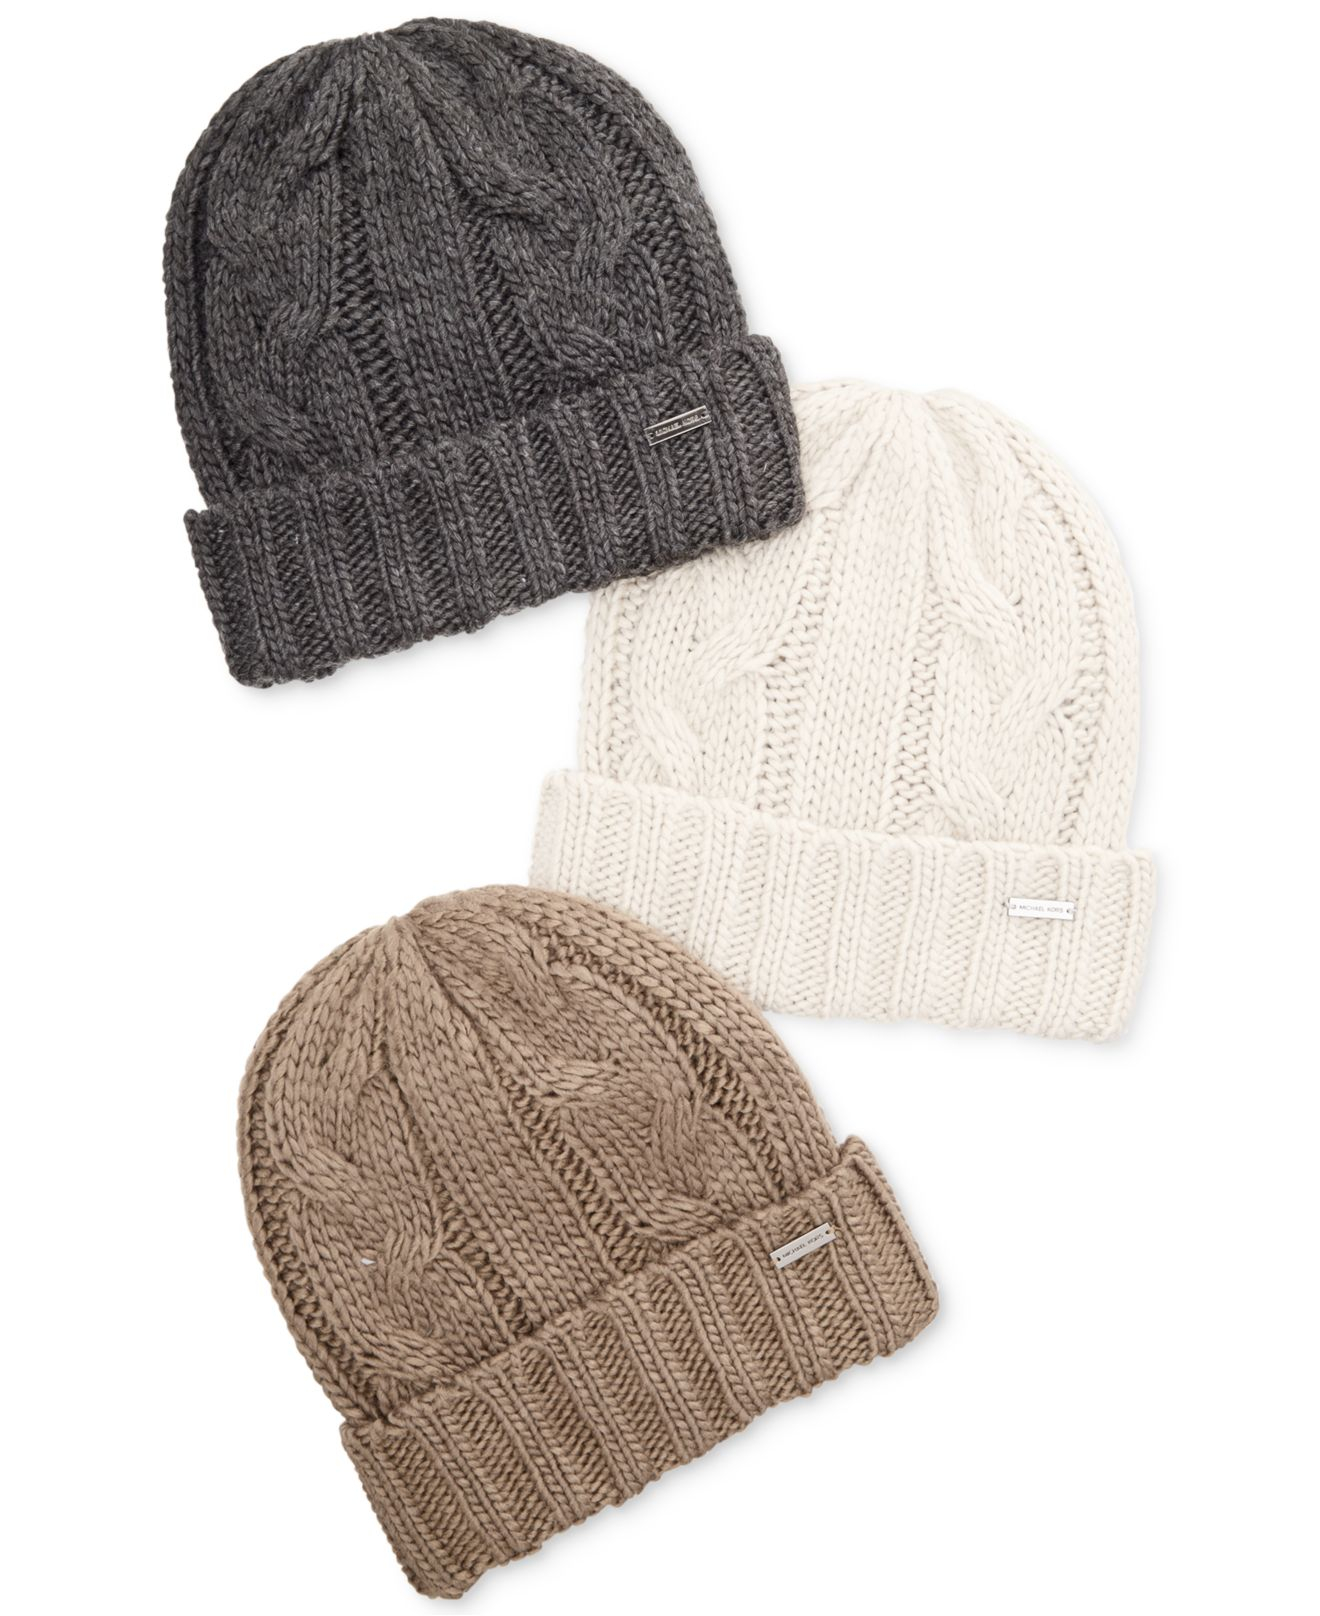 Lyst - Michael Kors Hand-Knit Cable Cuff Hat in Brown for Men 21ea44e79b4